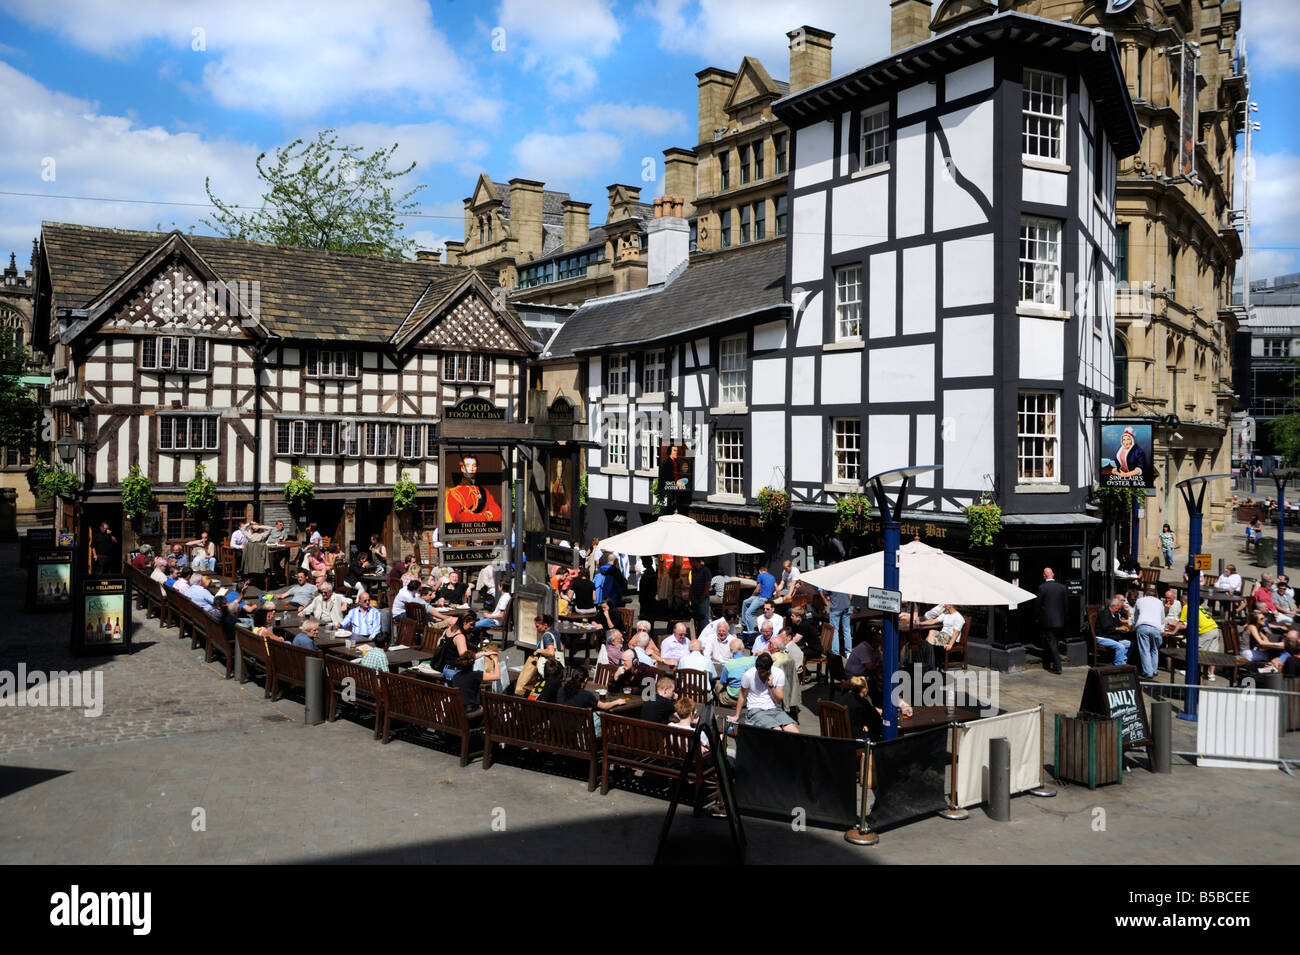 Old half timbered buildings, Manchester, England, Europe - Stock Image